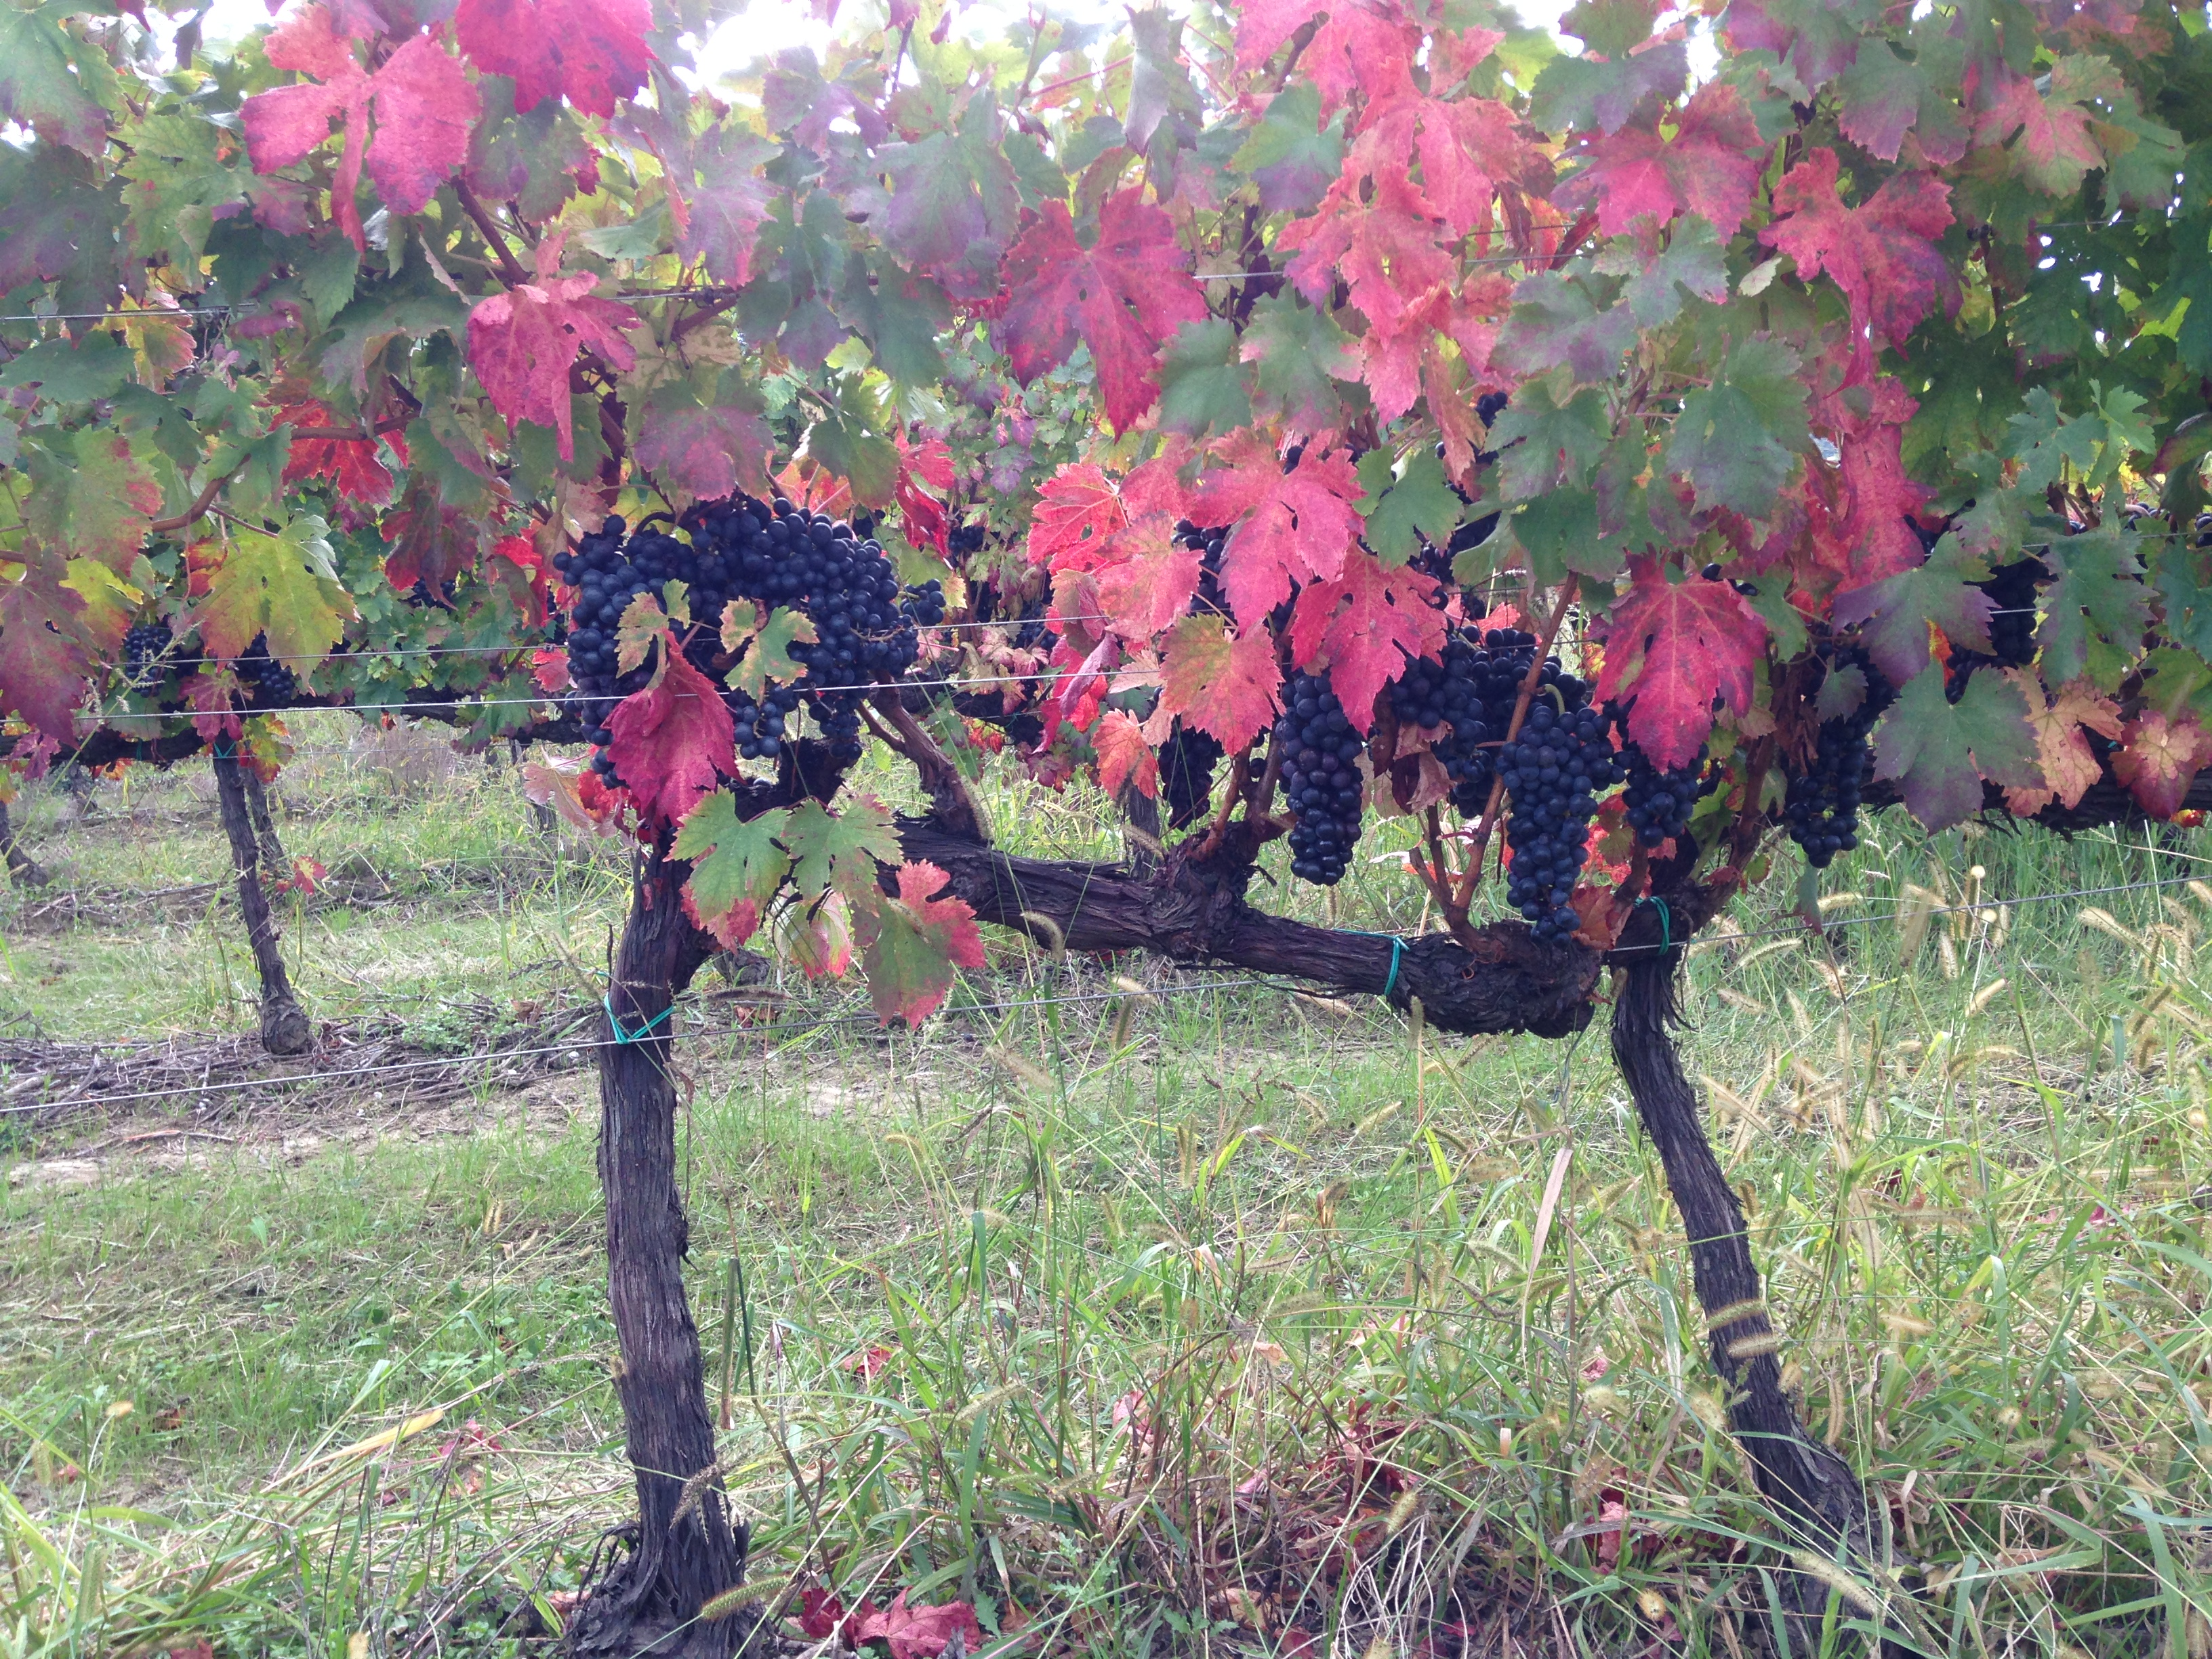 Lacrima grapes at fall